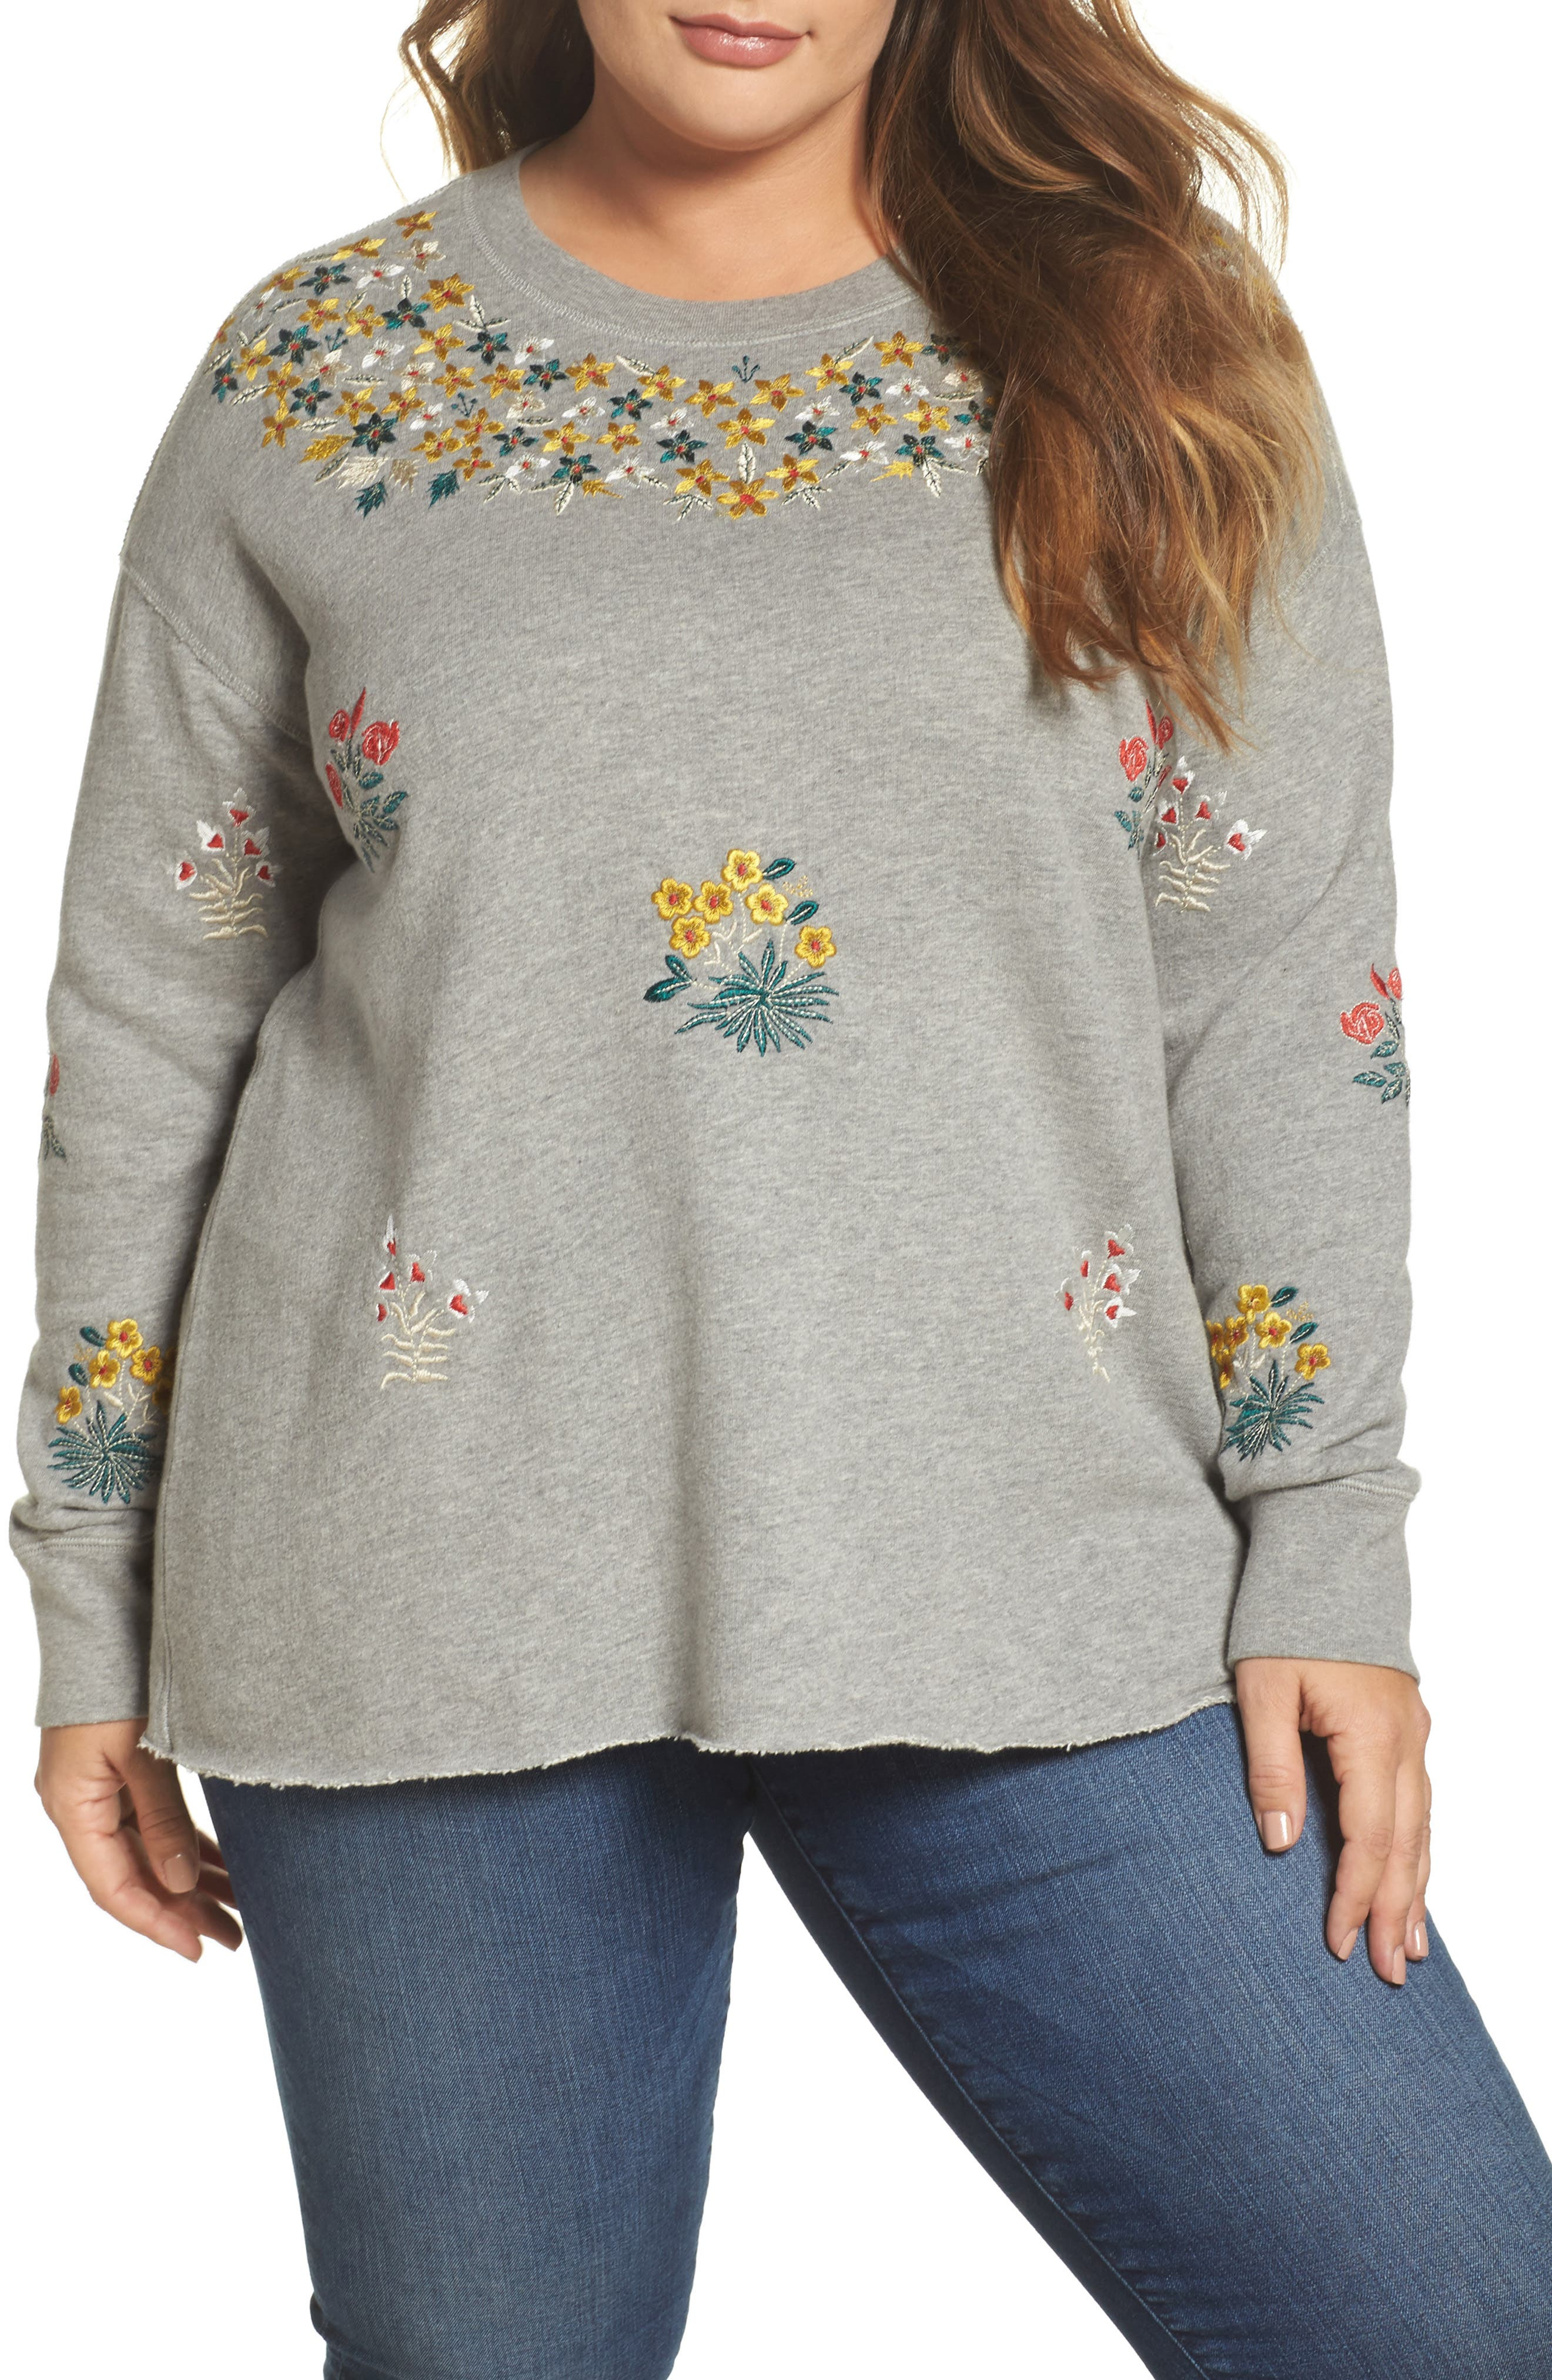 Embroidered Sweatshirt,                             Main thumbnail 1, color,                             Heather Grey